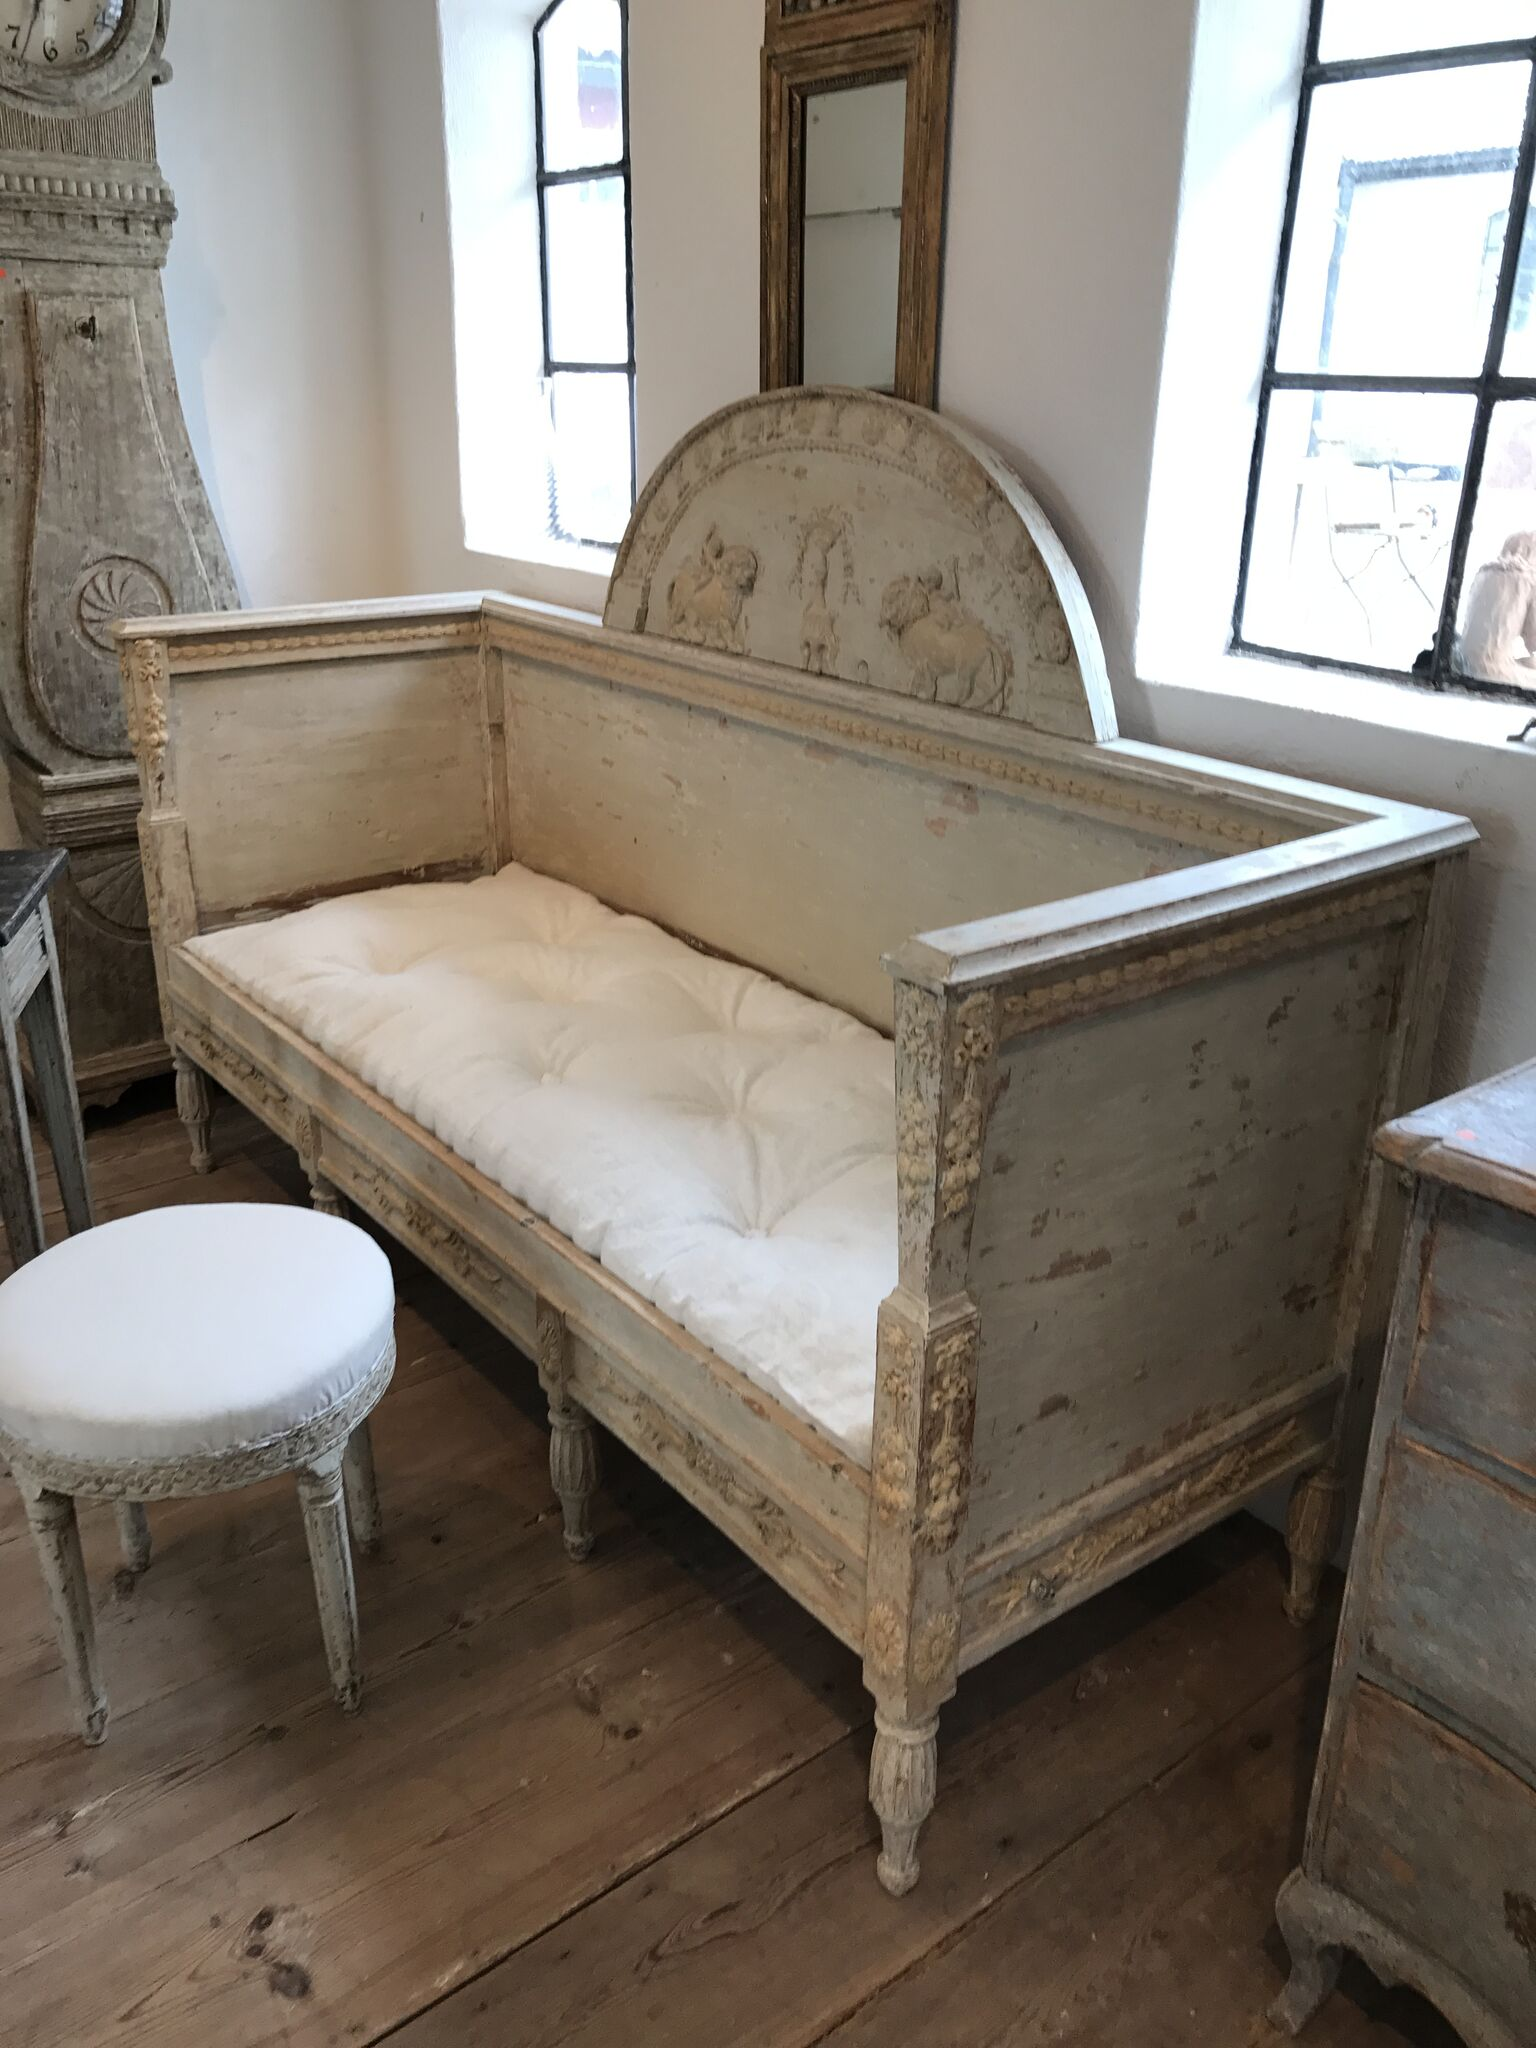 Antique Swedish daybed: Source Antiques Like the Pros- Why Sweden is HOT for Sourcing Antiques | Toma Clark Haines | The Antiques Diva & Co